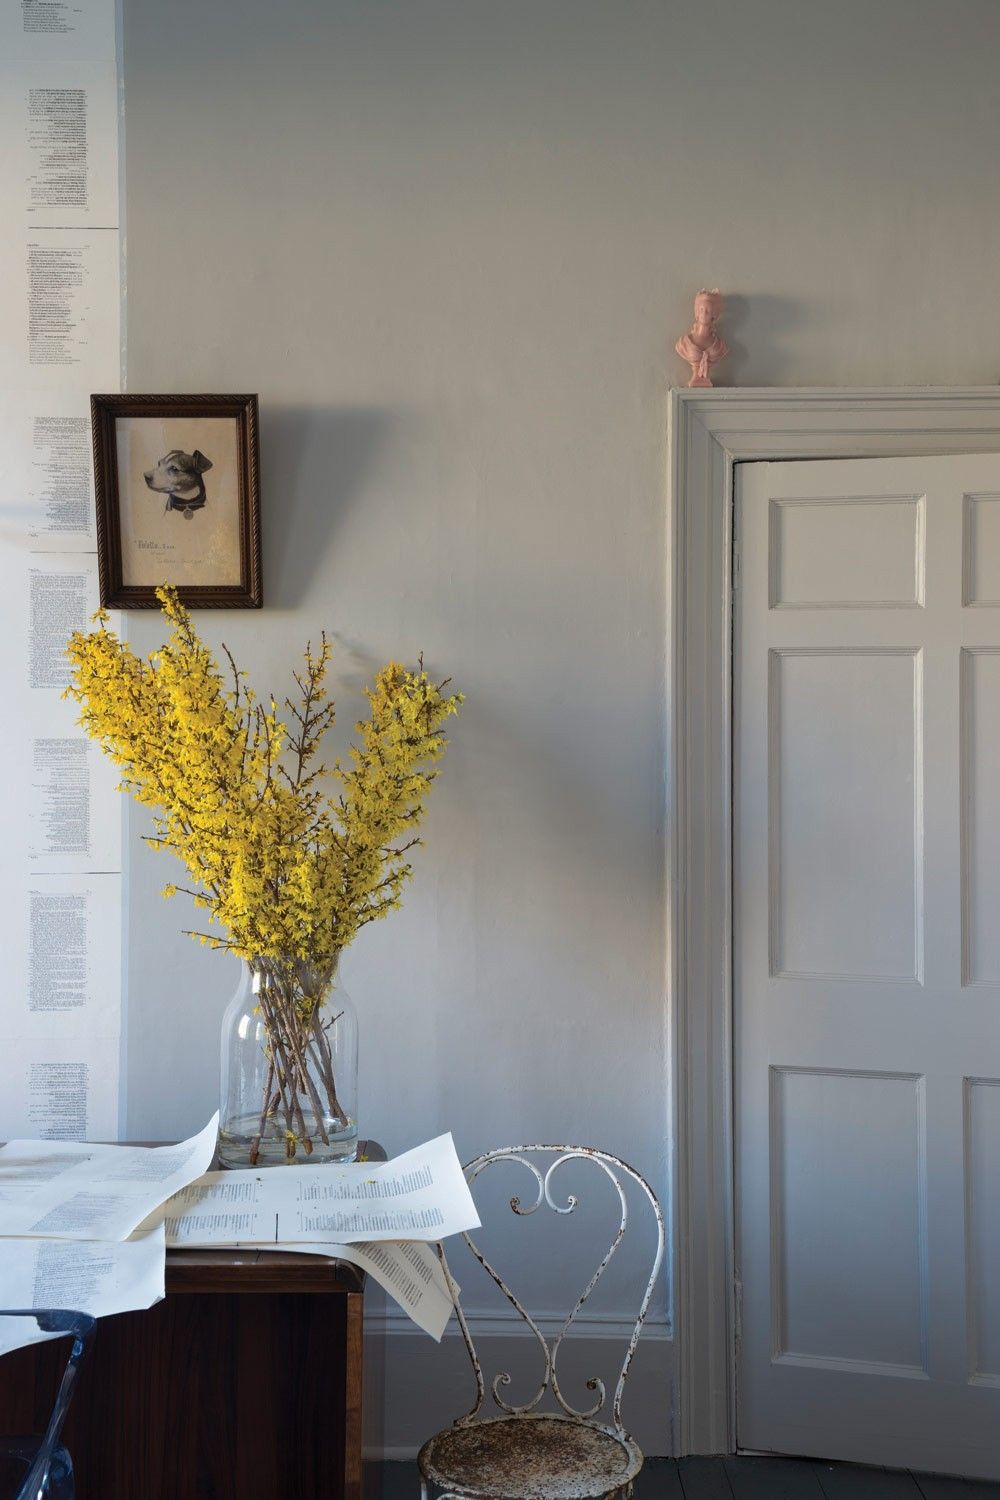 Farrow & Ball Modern Emulsion No. 275 Purbeck Stone 2,5 litraa